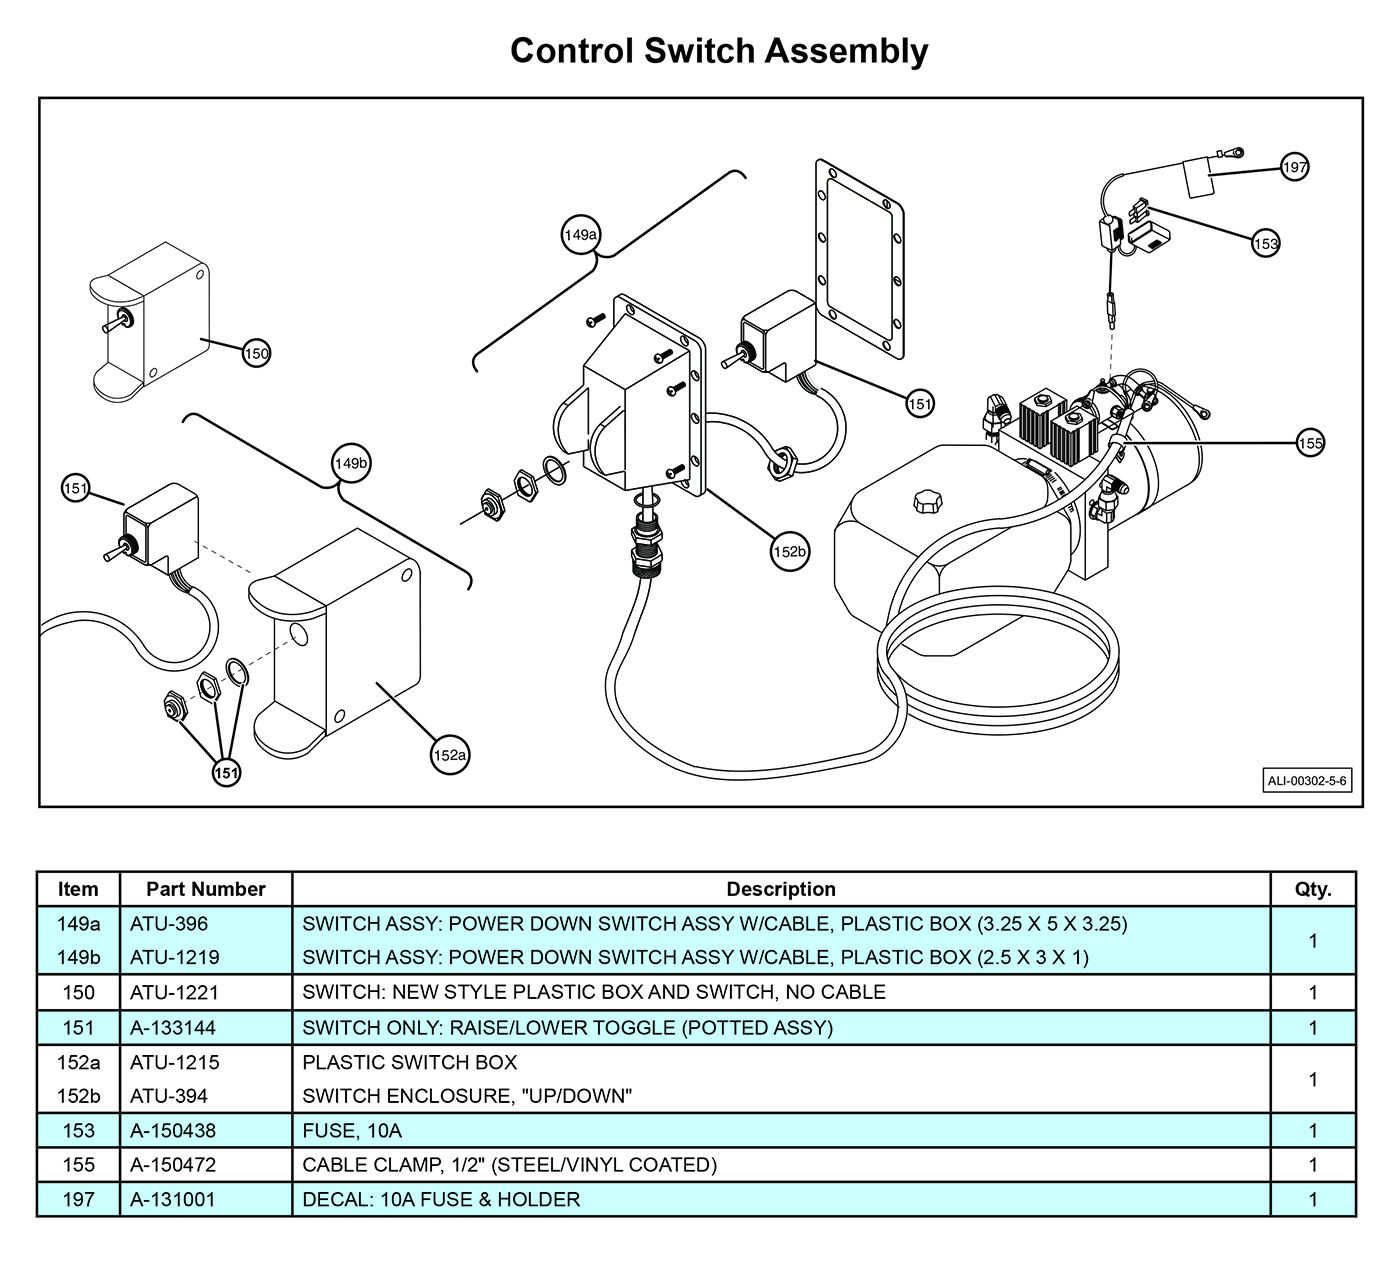 MTU-GLR-3-4 Control Switch Assembly Diagram